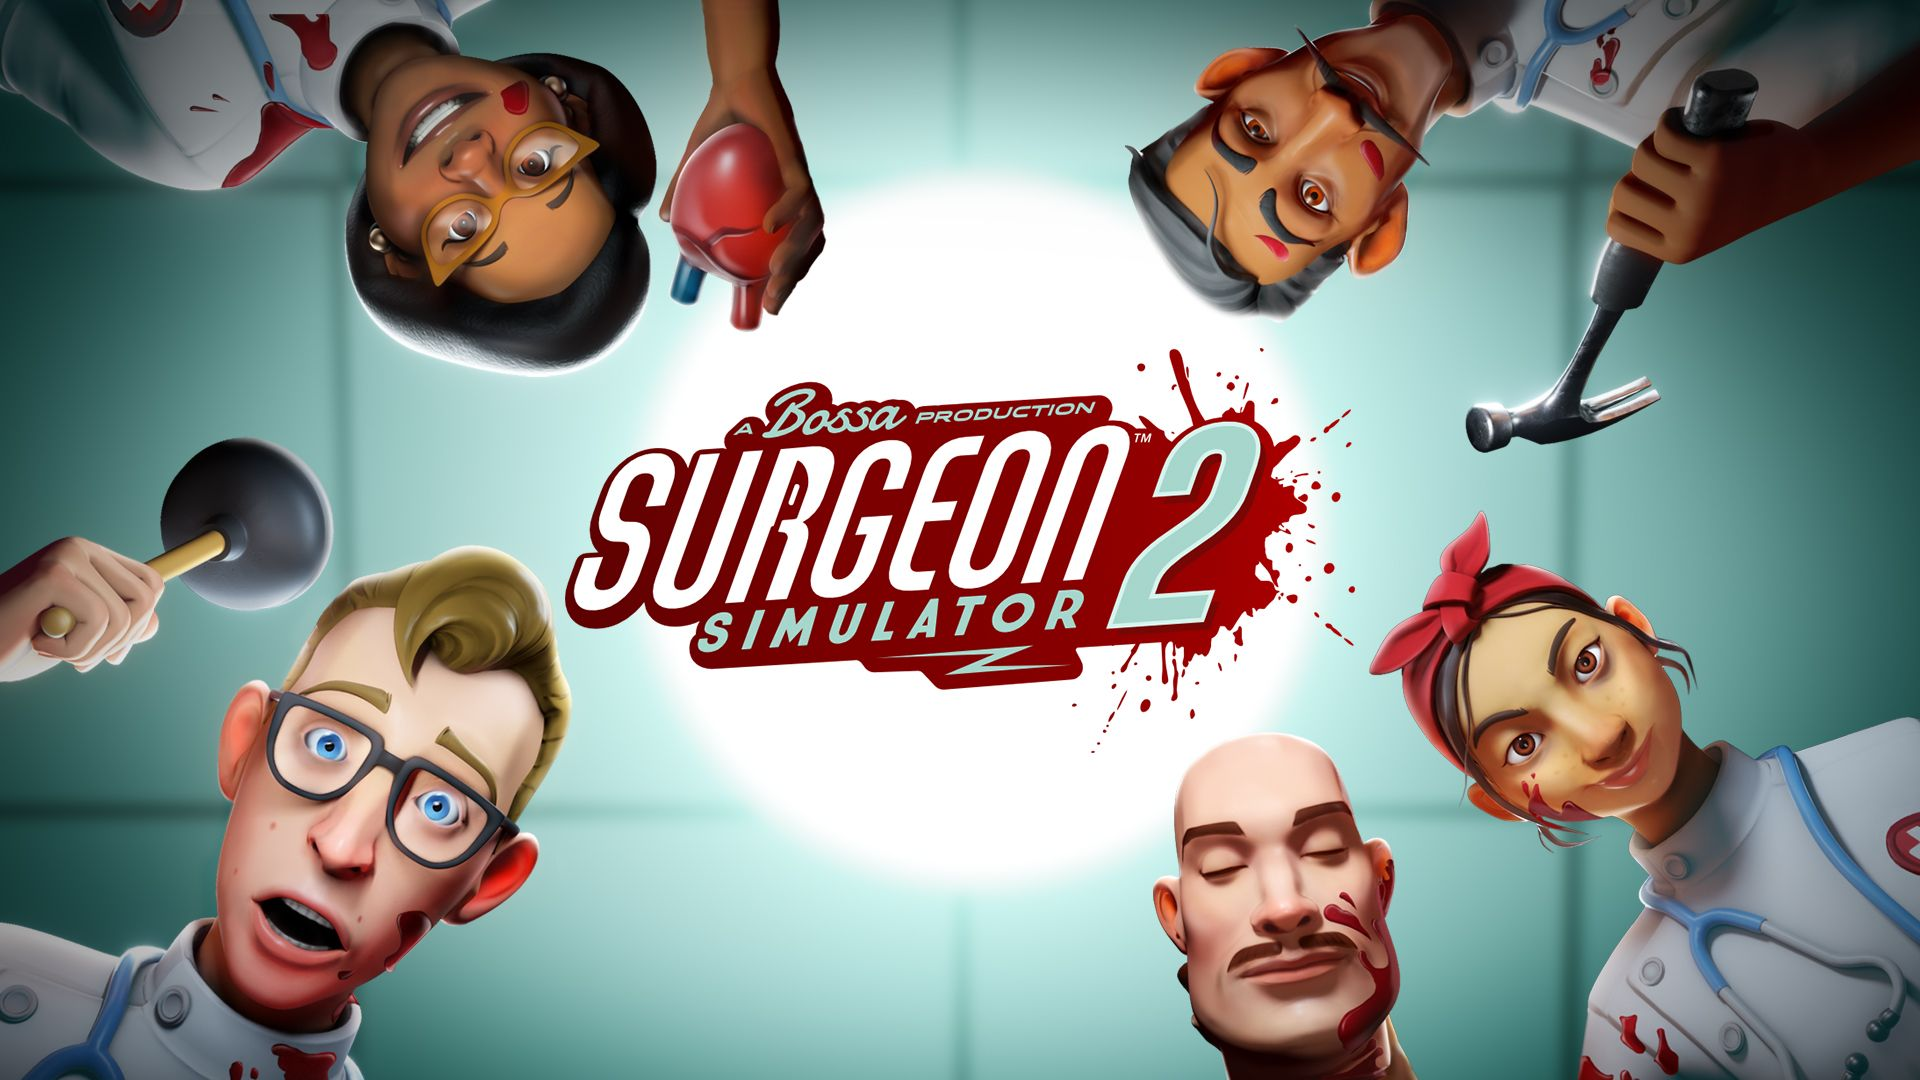 Back To The Future's Doc Brown Launches Surgeon Simulator 2